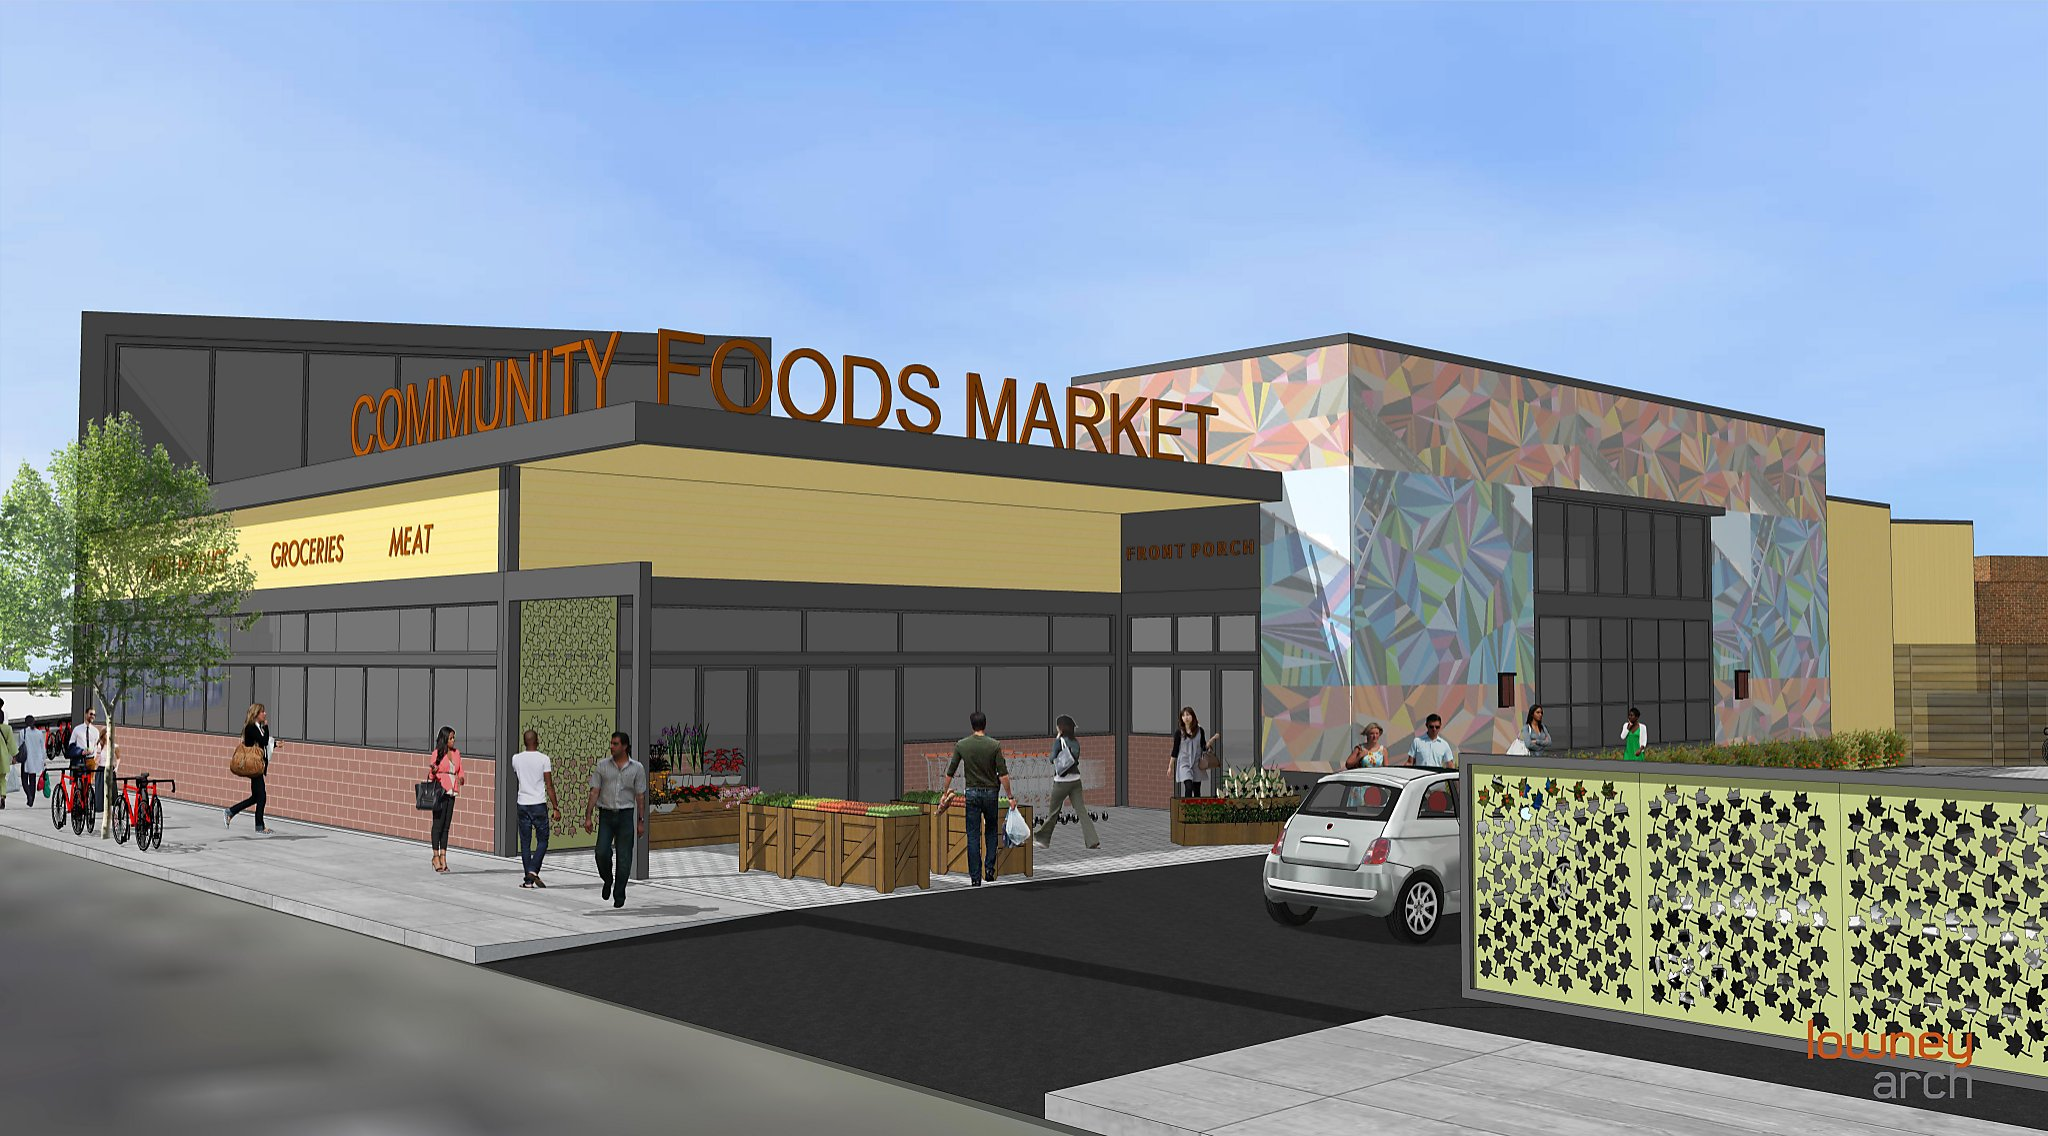 By December 2018, San Pablo Avenue in West Oakland will have its first full service grocery store in more than a decade. Not just a grocery store, Community Foods will provide local jobs , healthy foods, and cafe space to host community gatherings.